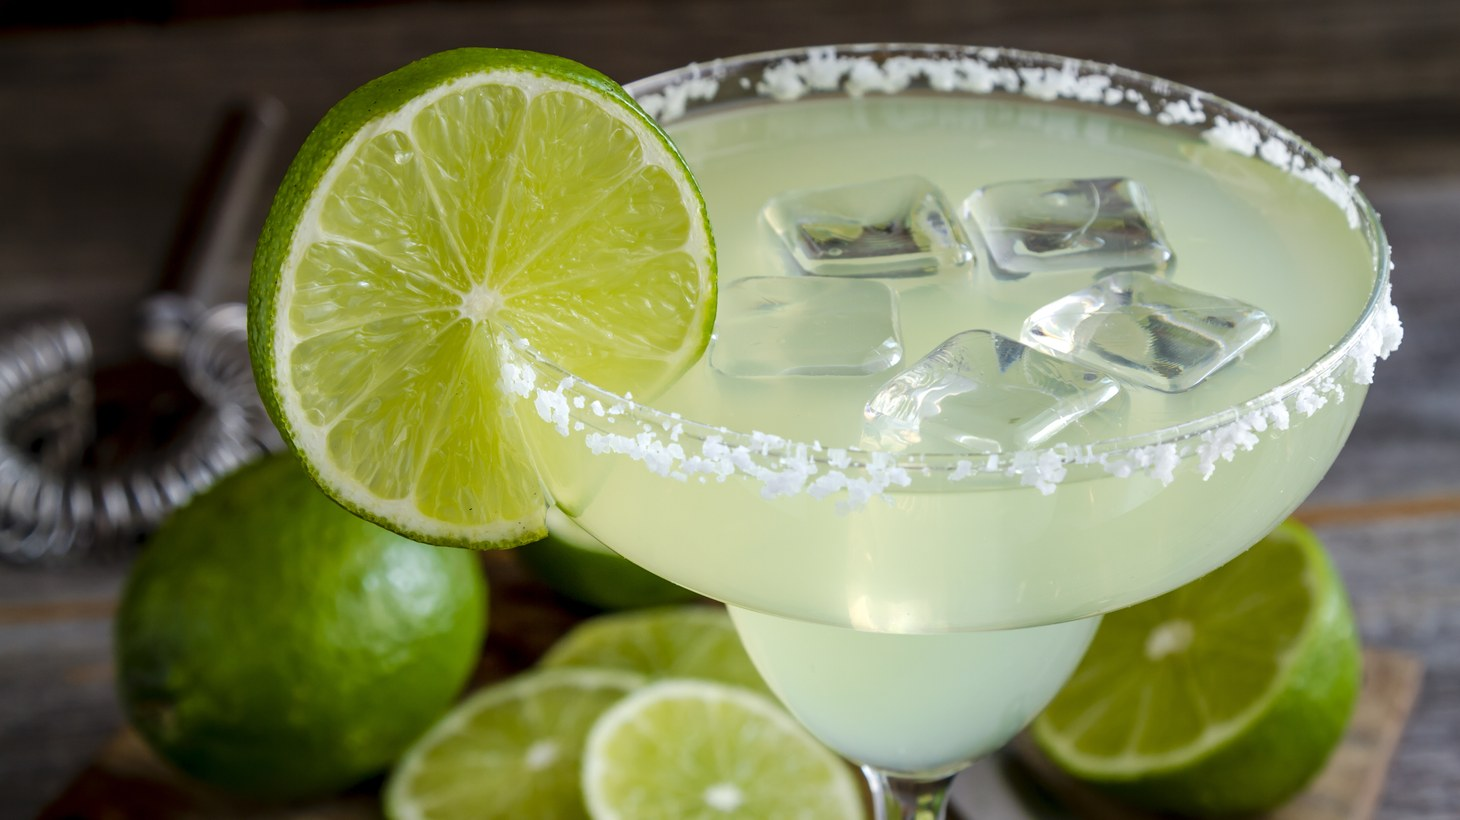 Pay heed when making a batch of margaritas, warns Dr. Rajani Katta. When citrus juice, particularly from limes, comes in contact with the skin and is then exposed to the sun, it can make cause Margarita dermatitis.